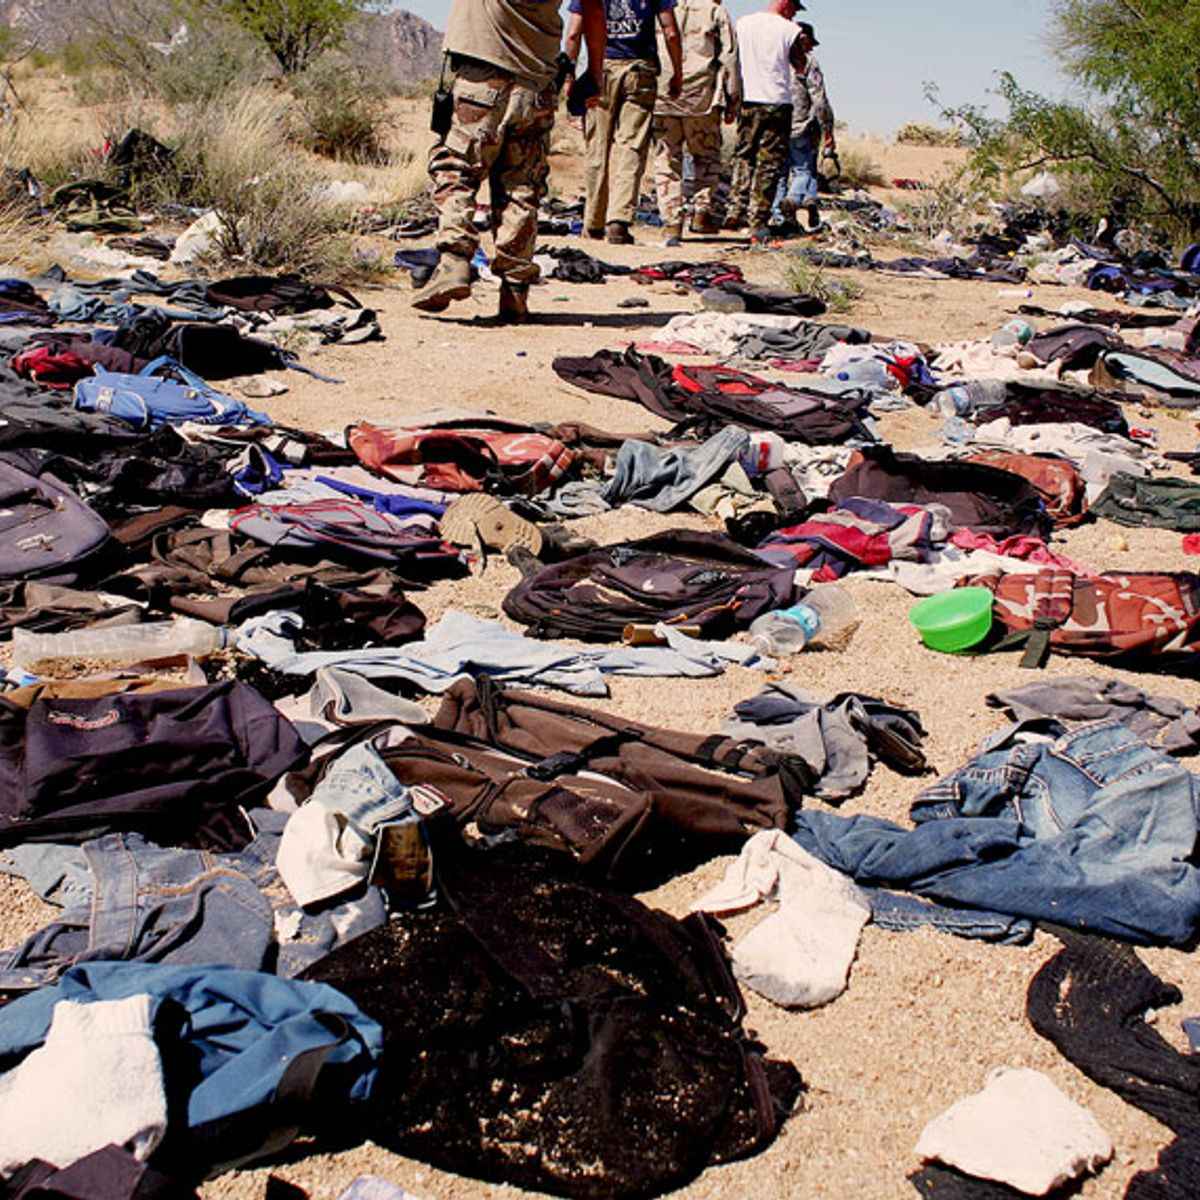 """""""Finding the bones was heartbreaking"""": What I learned about migrants picking up trash at the border"""